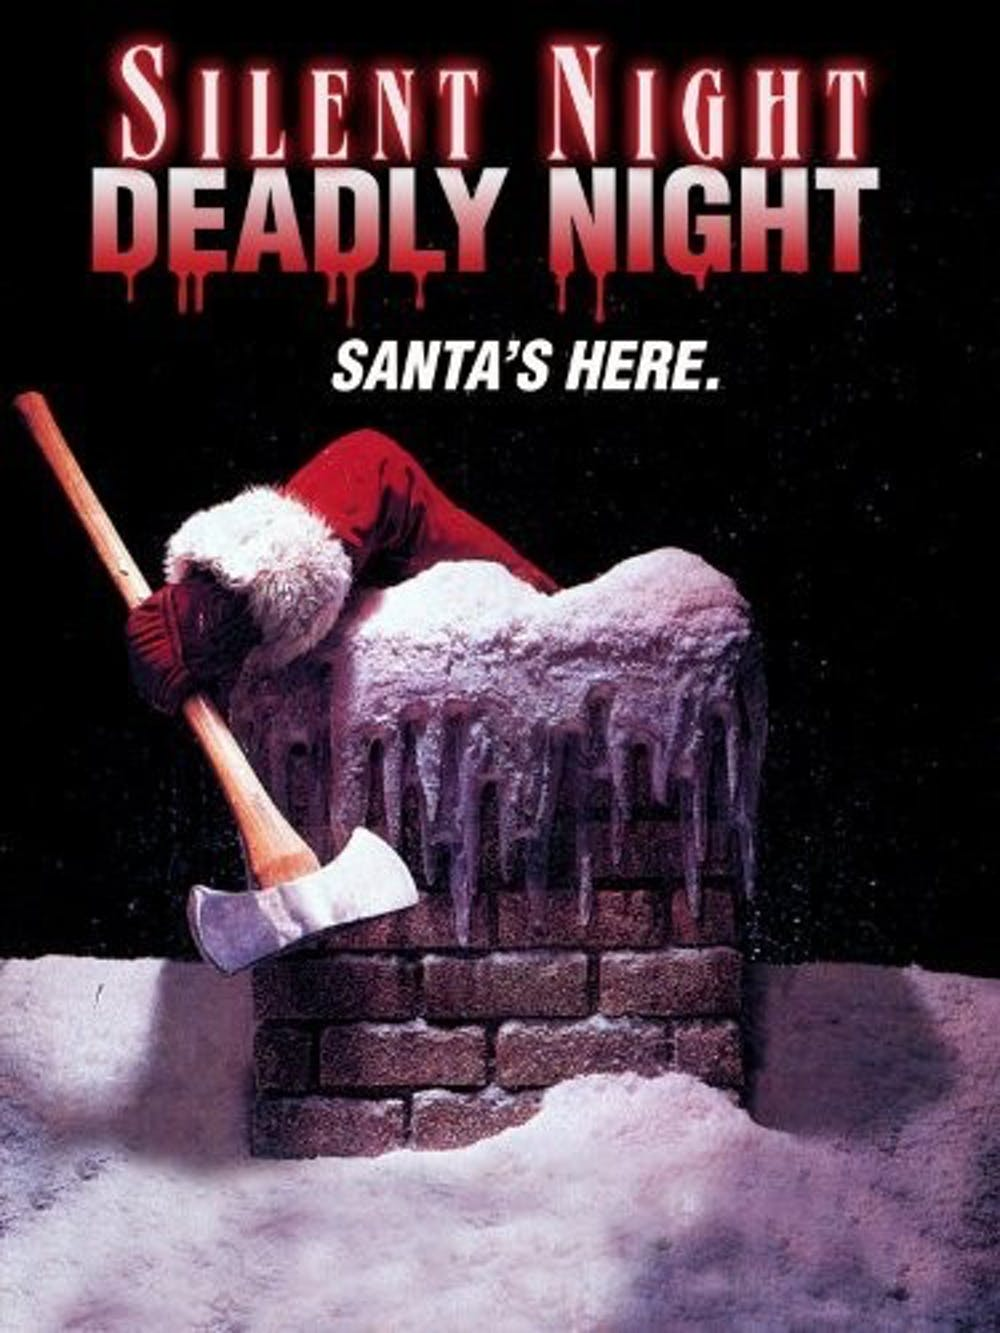 Grindhouse Review: 'Silent Night, Deadly Night'